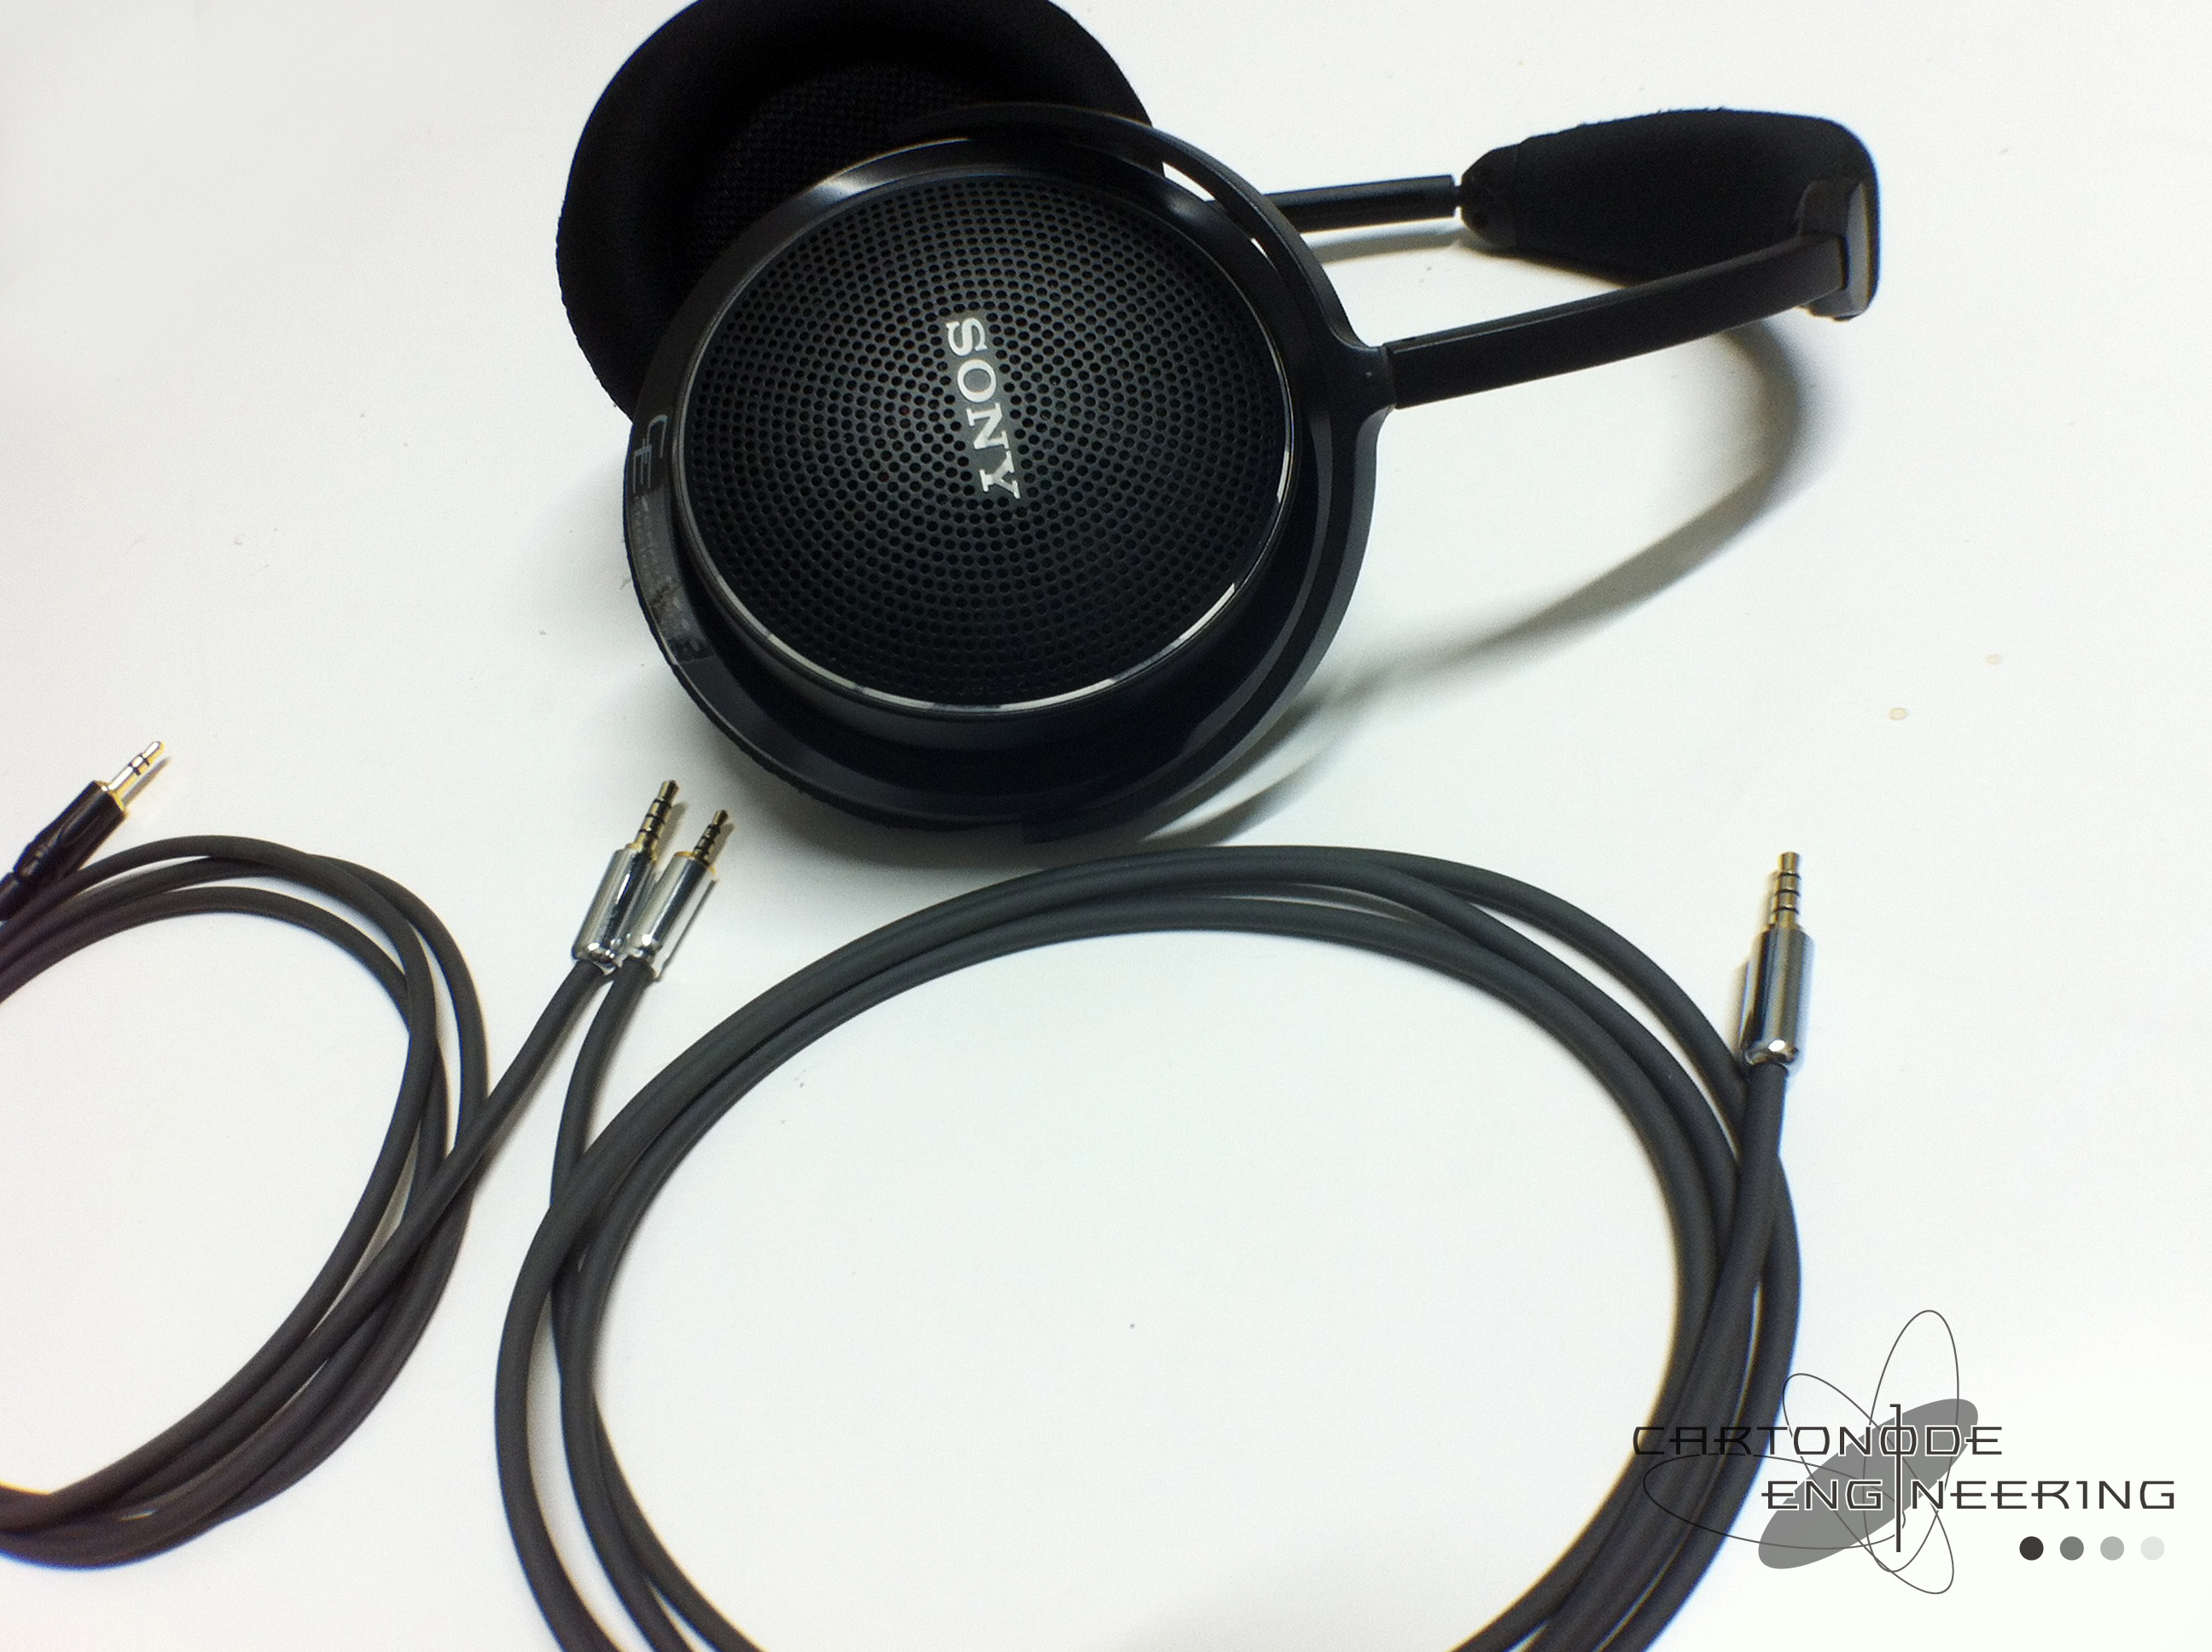 MDR-MA900CEMODバランス脱着φ2.5